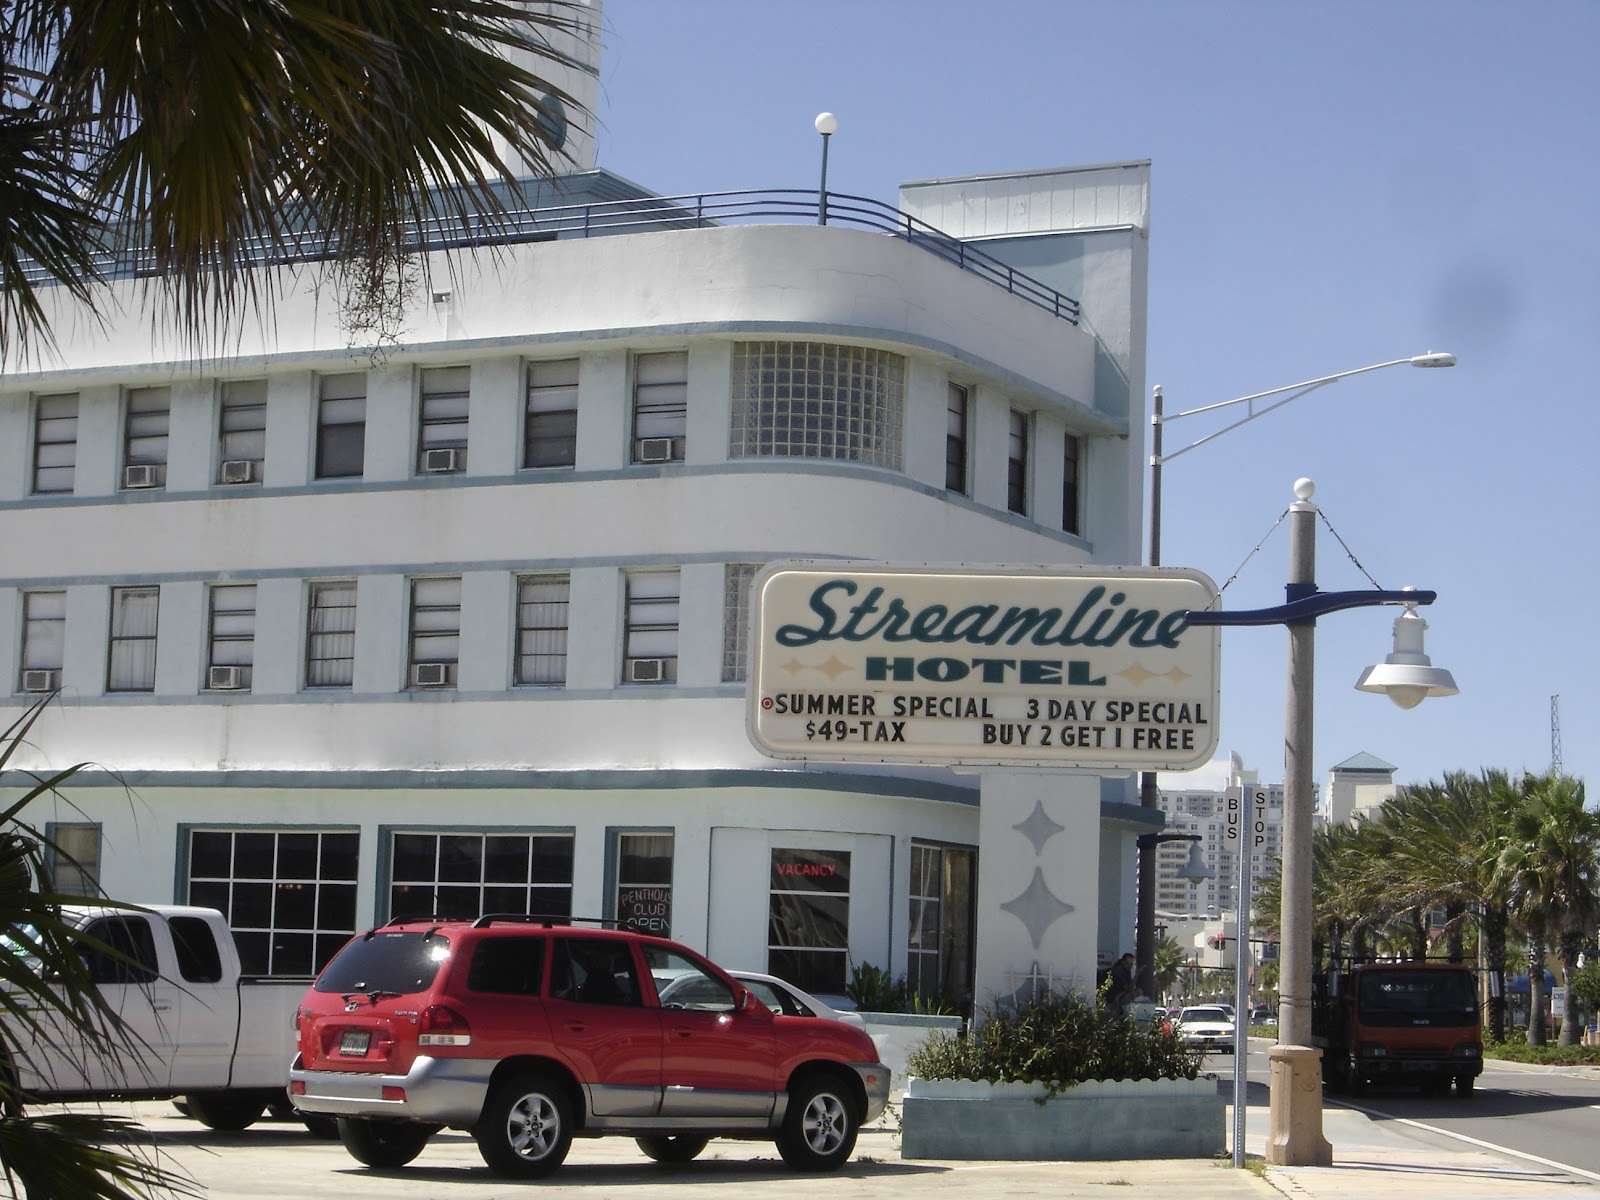 Streamline Hotel Daytona Beach Florida